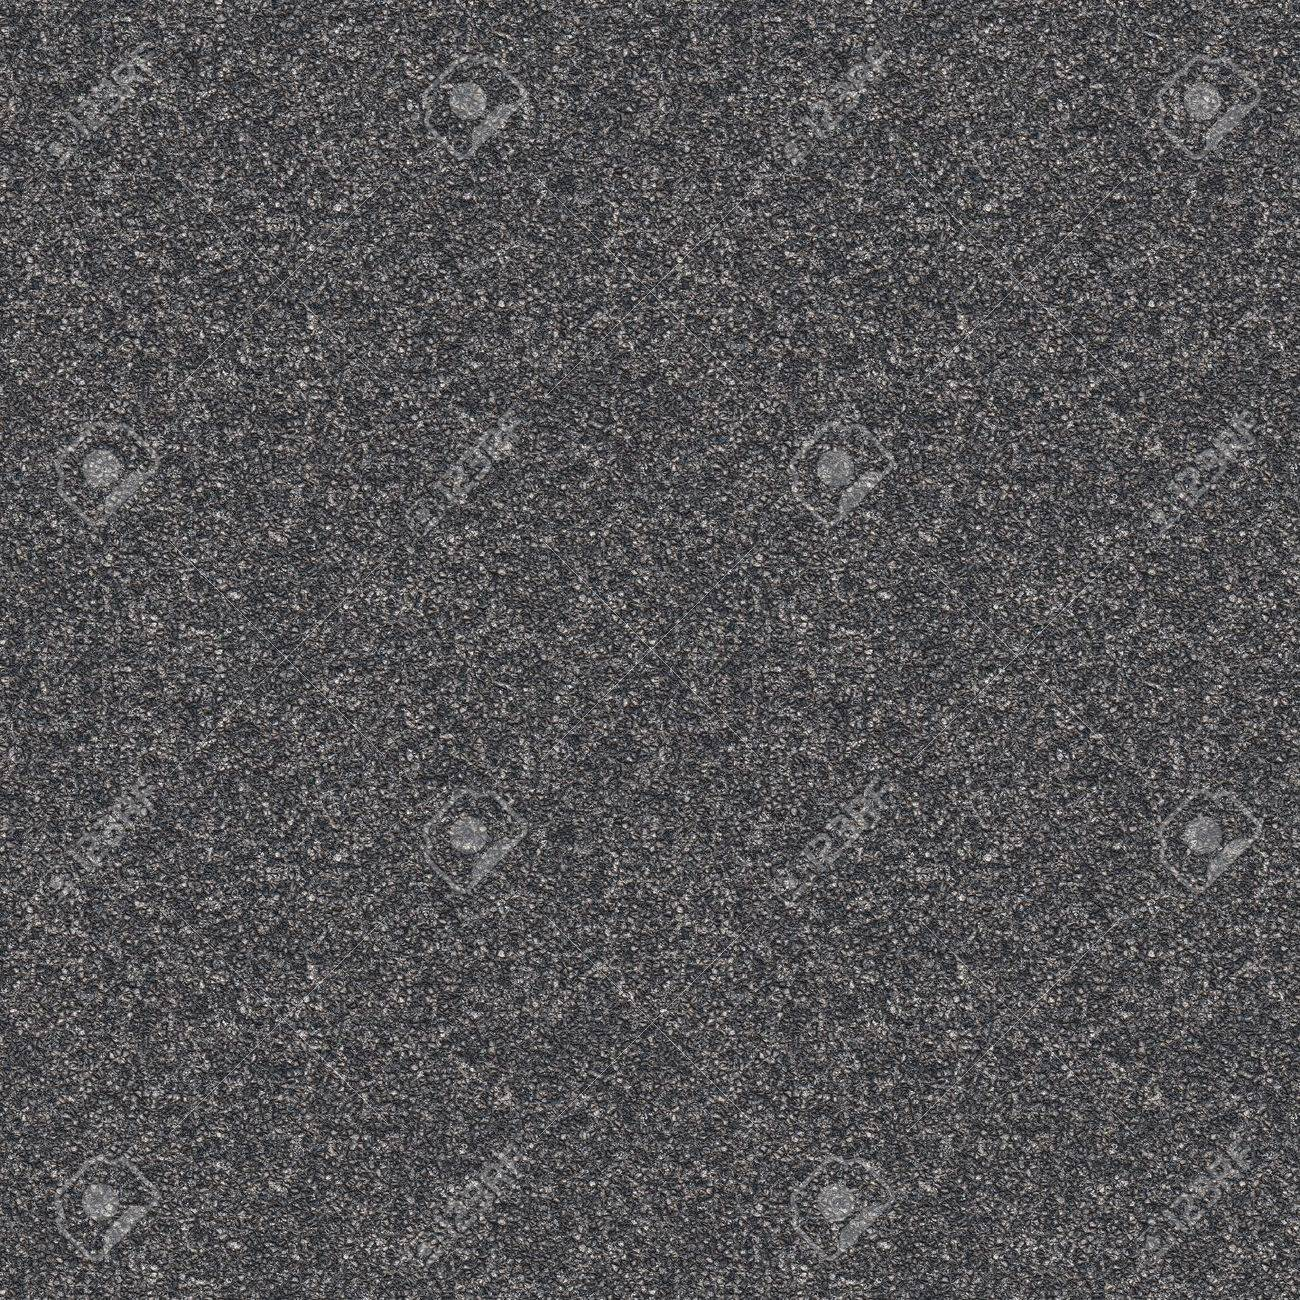 An image of a seamless asphalt texture background Stock Photo - 7782091